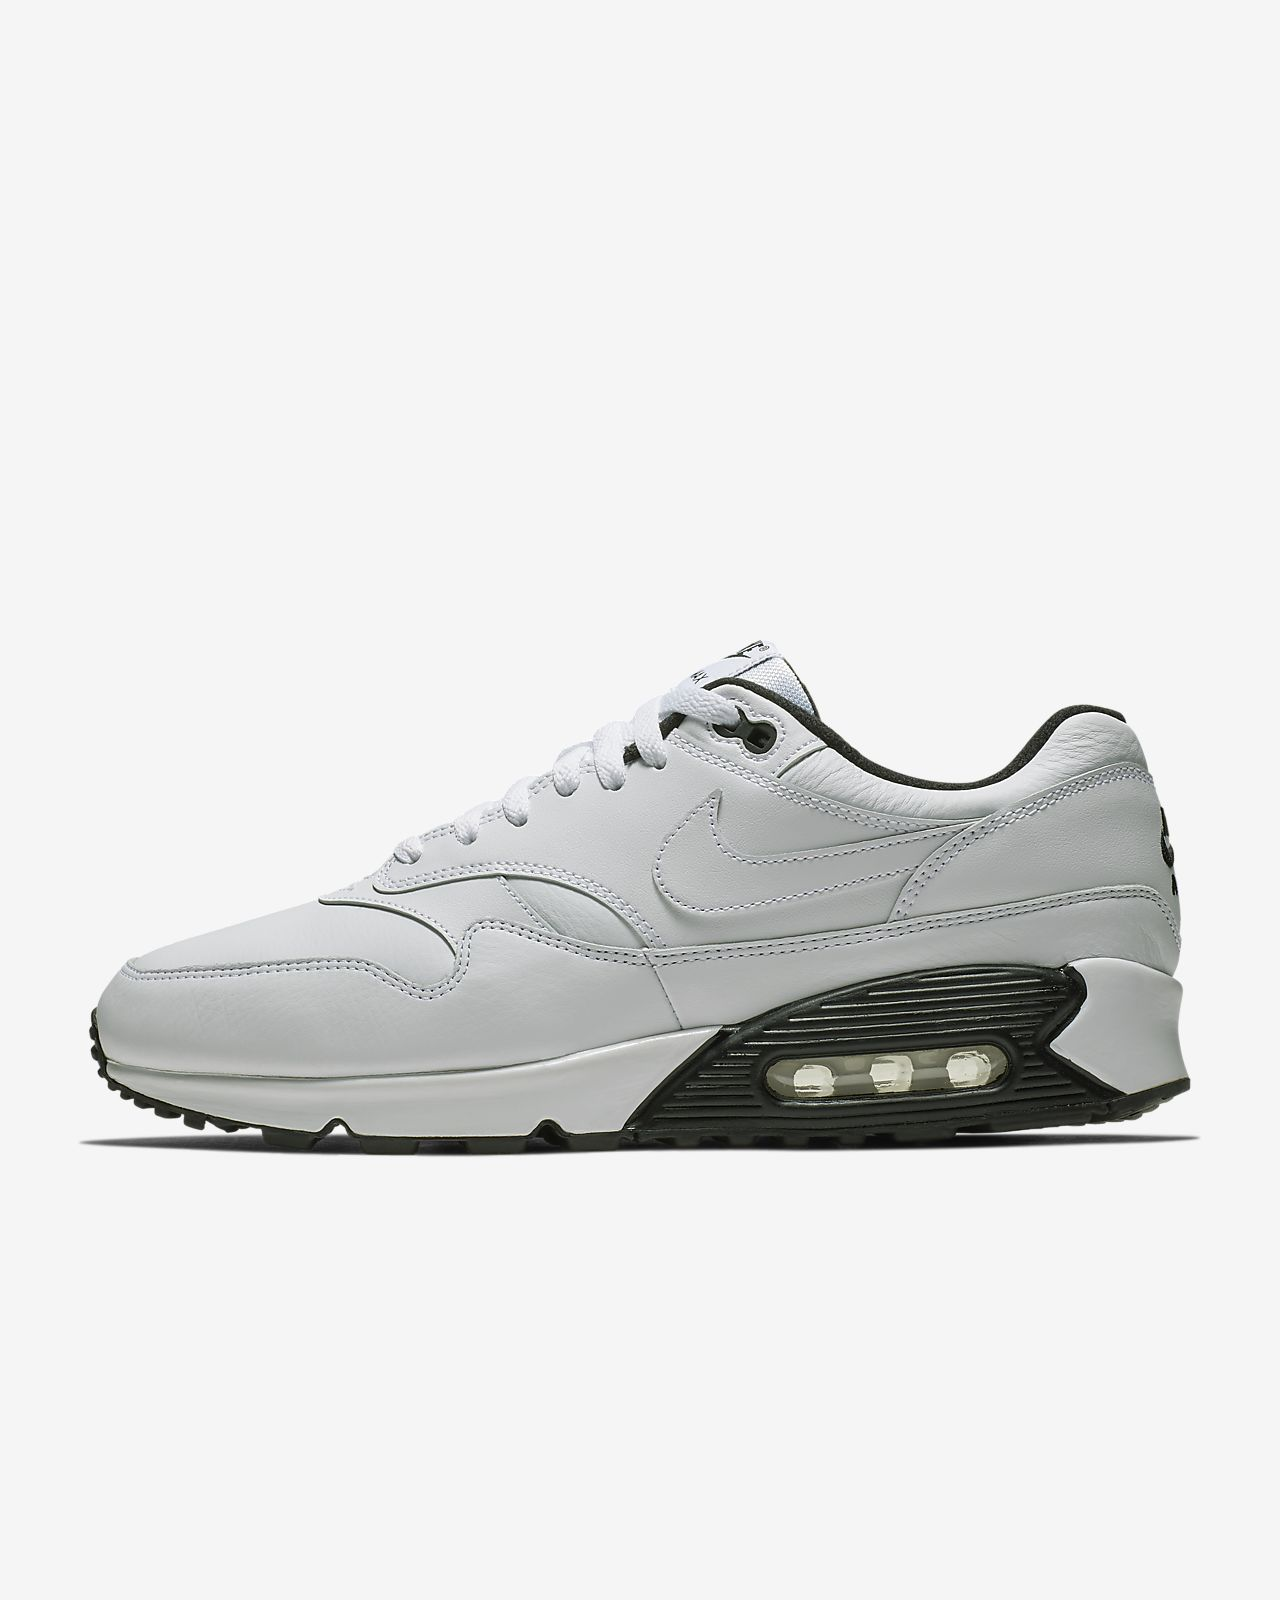 Air Be Chaussure Nike Pour Homme 901 Max RSRw5ZqA